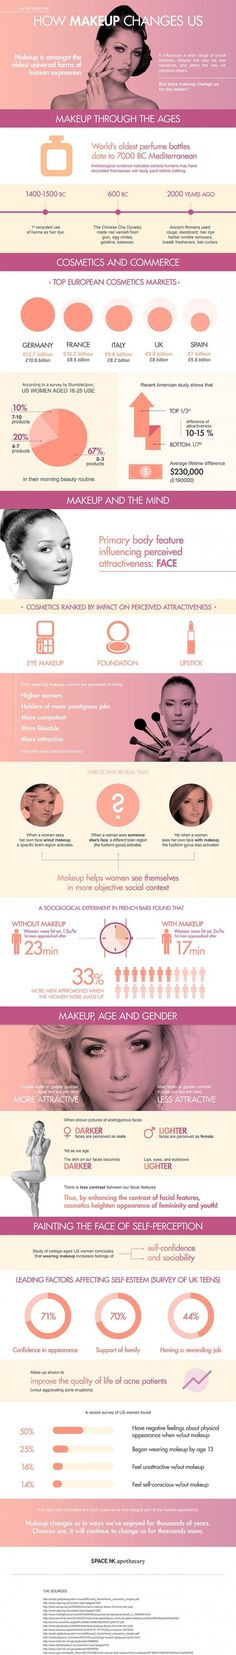 How Makeup Changes Us - 38 Helpful #Beauty Infographics to Pore over